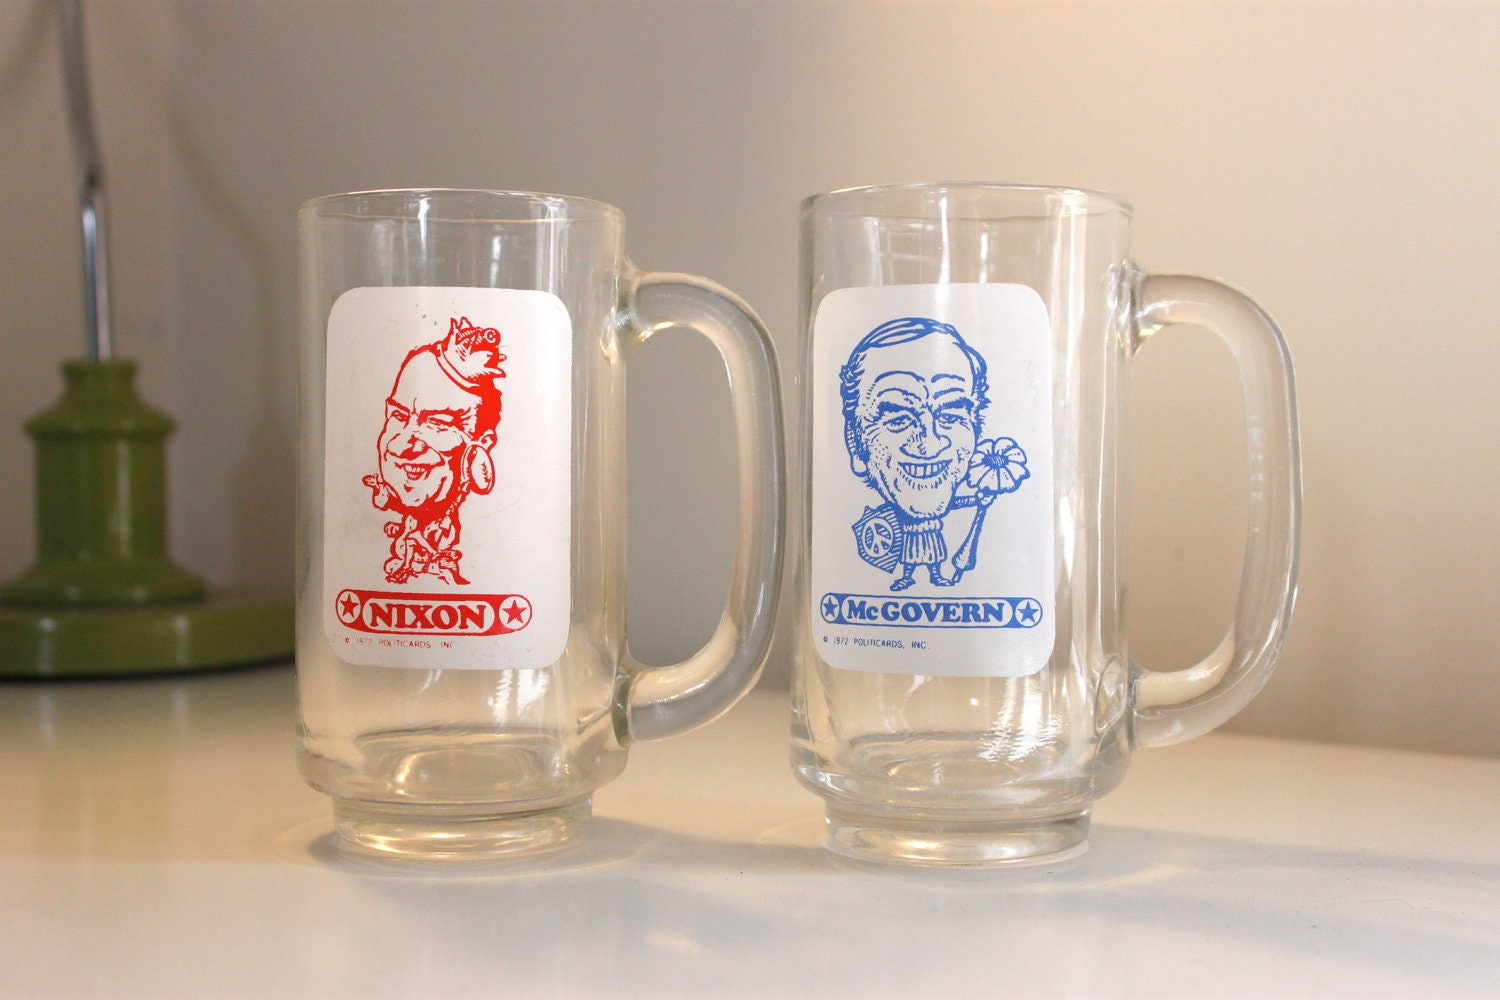 Vintage Presidential Candidate Republican Democrat Beer Mugs From 1972 Great Political Gift